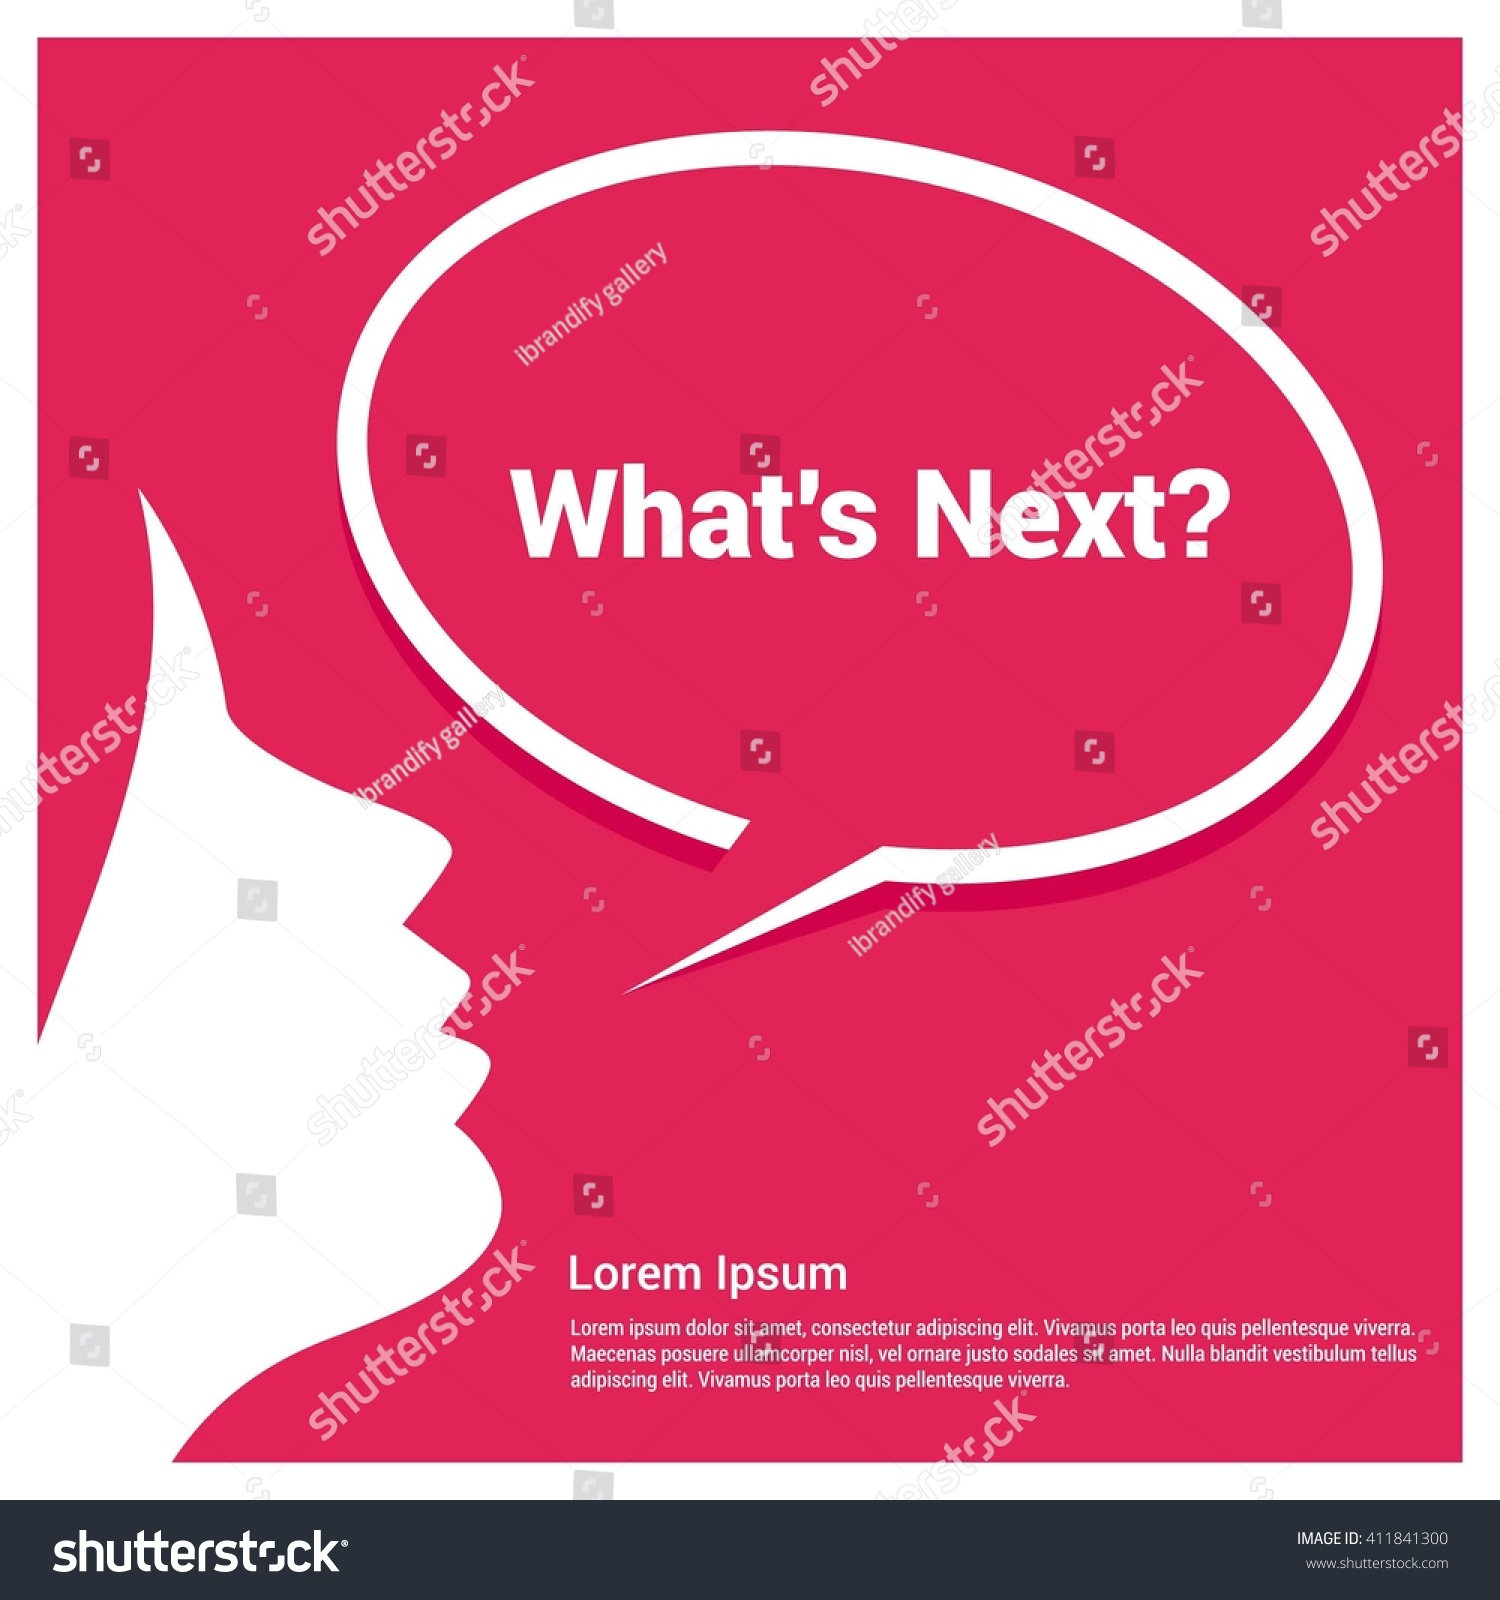 Whats Next Text Realistic Speech Bubble Stock Vector (Royalty Free